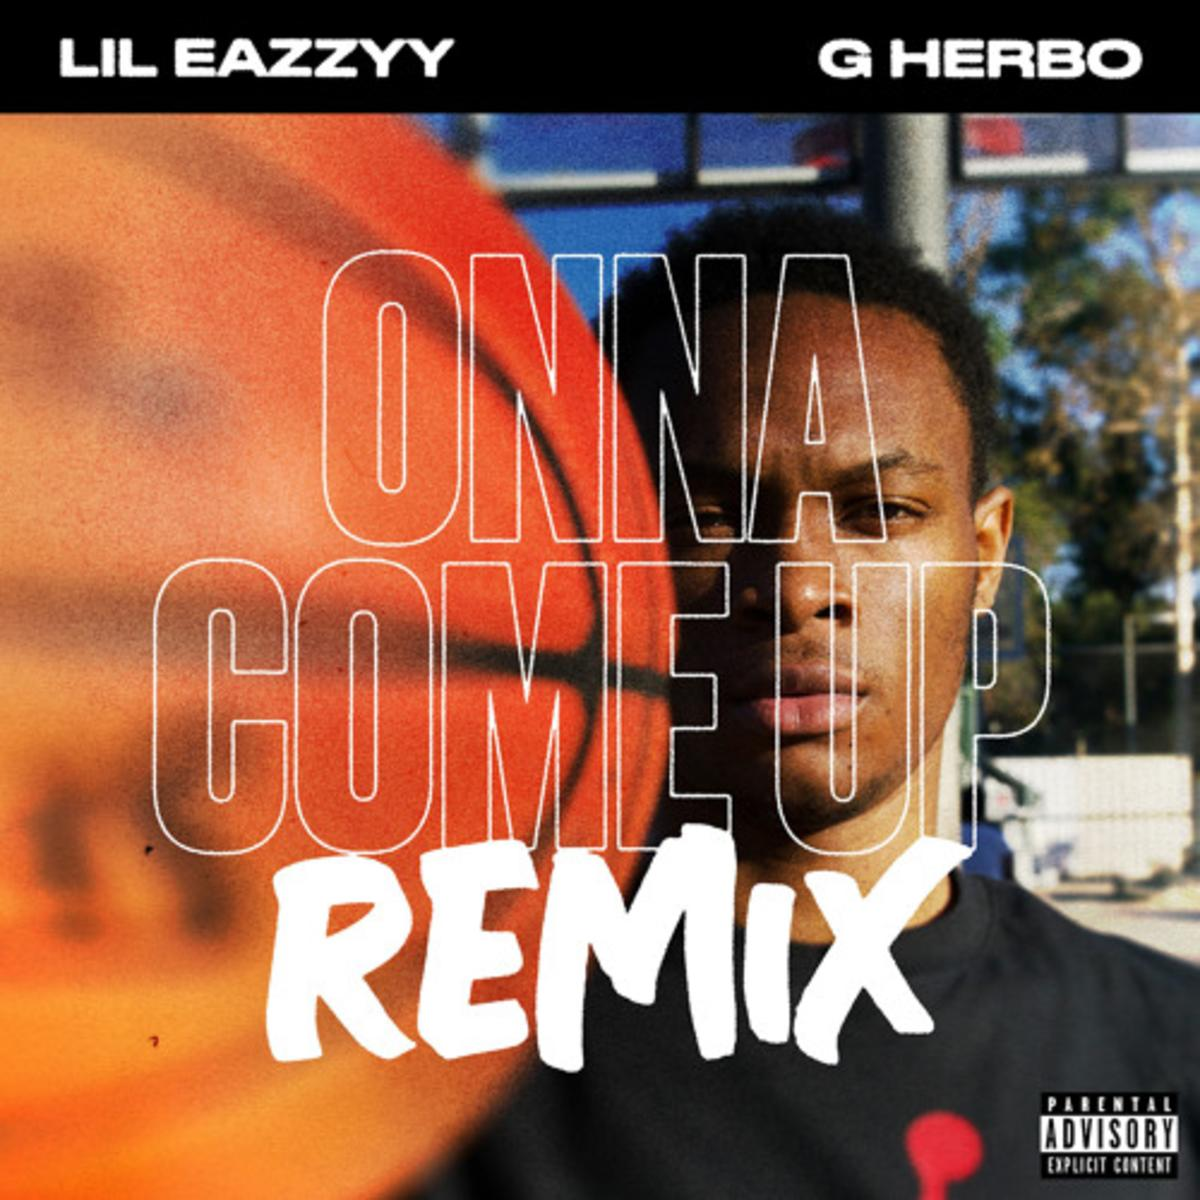 """Lil Eazzy Teams Up With G Herbo For """"Onna Come Up"""" Remix"""